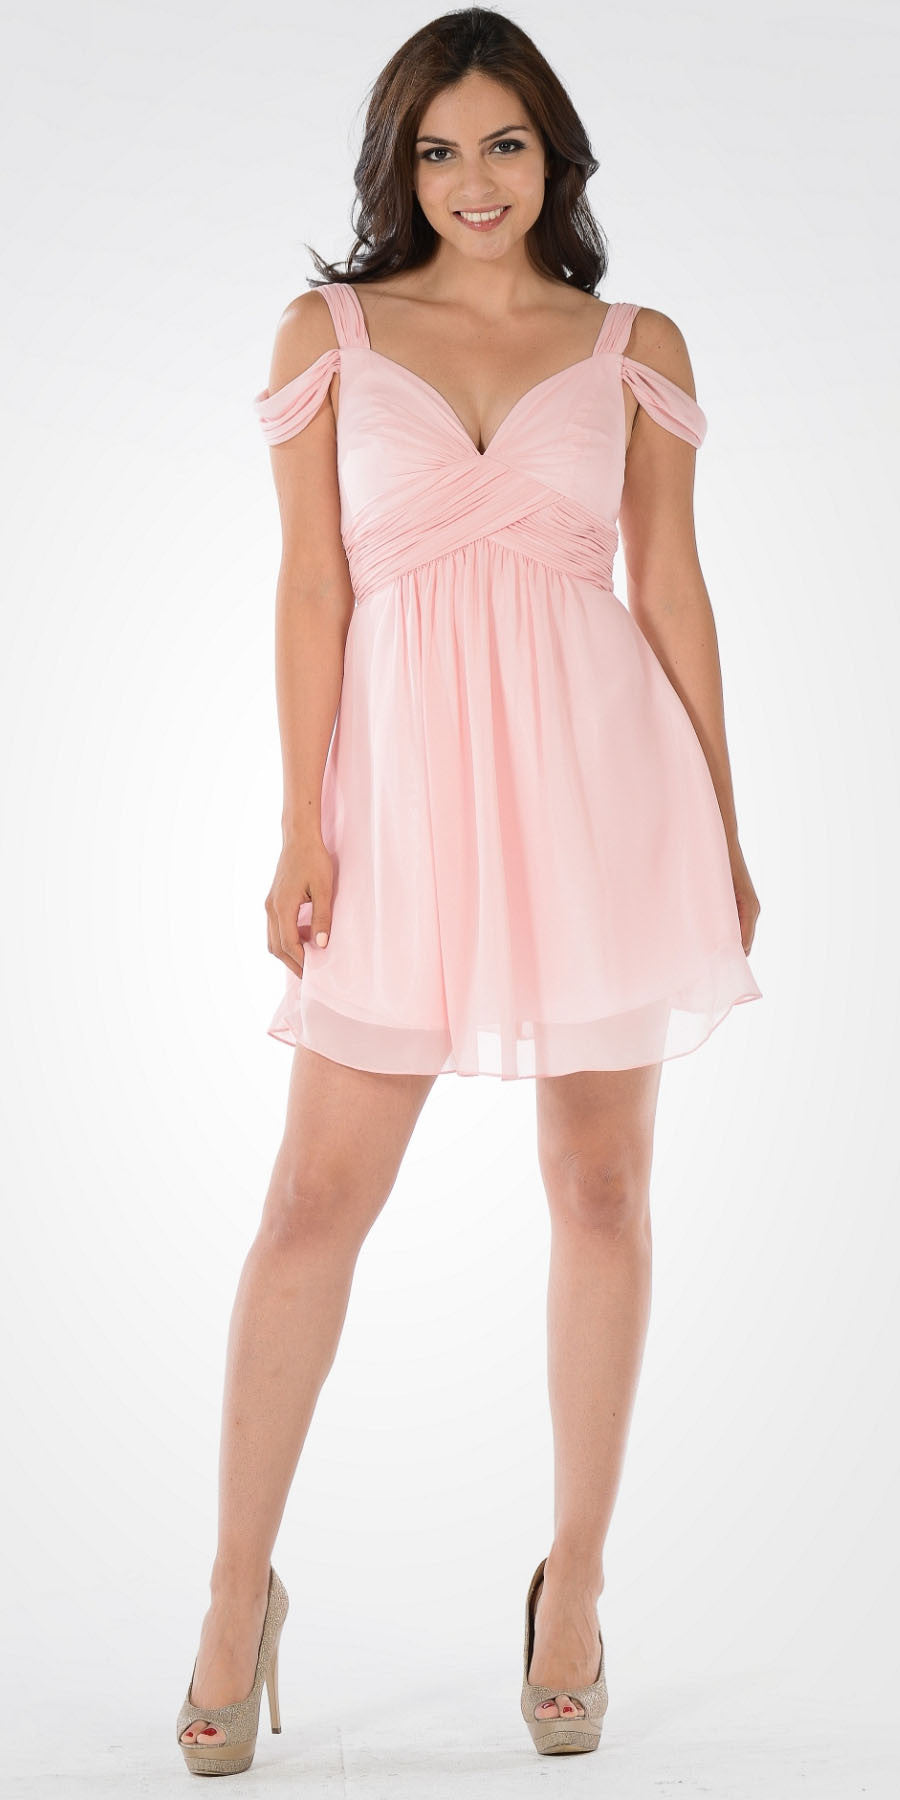 Strappy Shoulder Empire Waist Short Cocktail Dress Blush